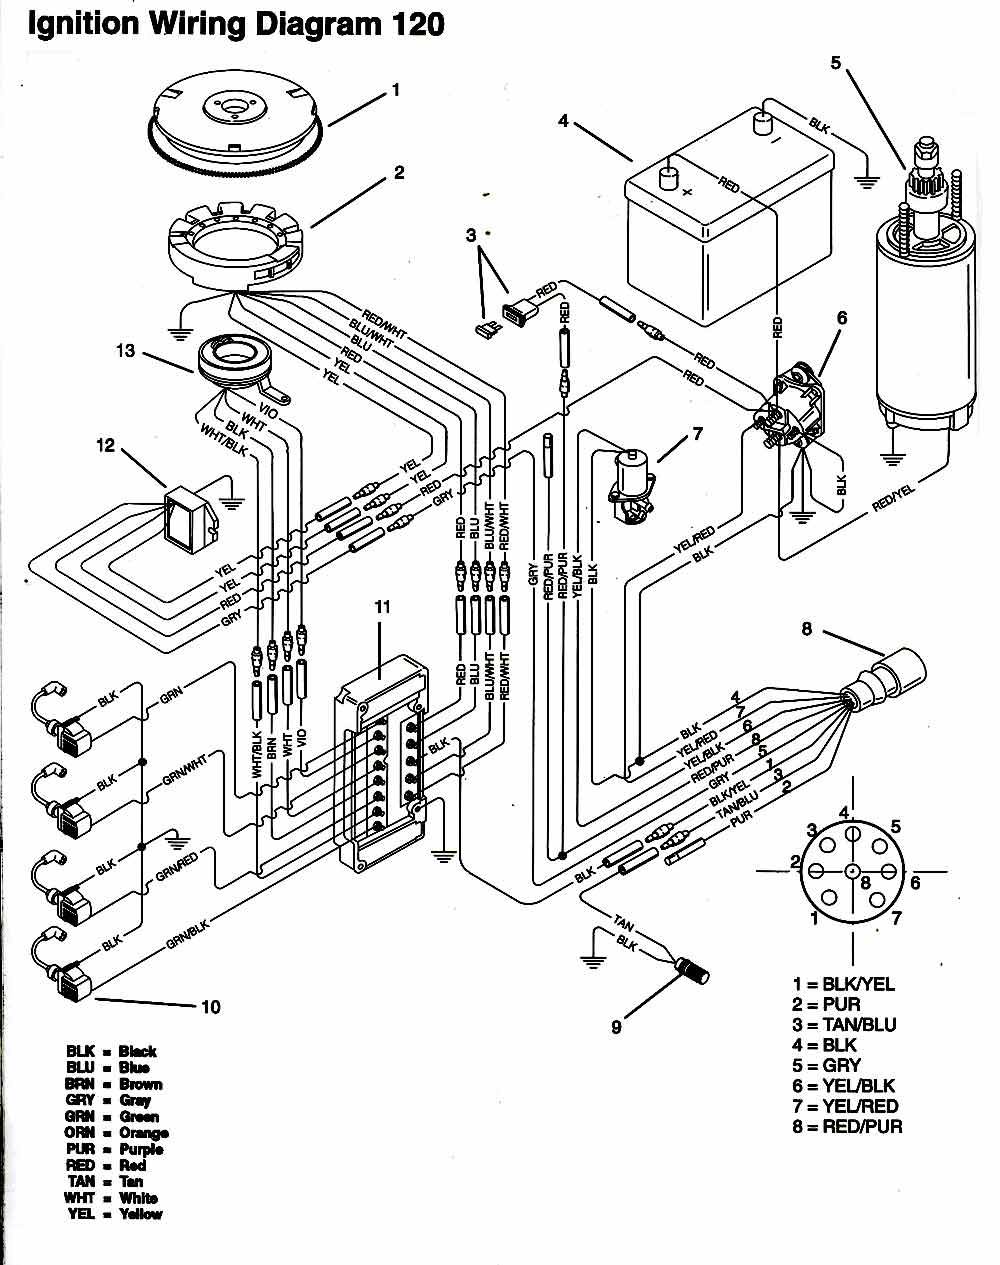 2 8l Engine Diagram Gen Stroke Wiring Reinvent Your 50 Hp Mercury 3cyl Easy Rules Of U2022 Rh Ideoder Co Uk 4 Cycle